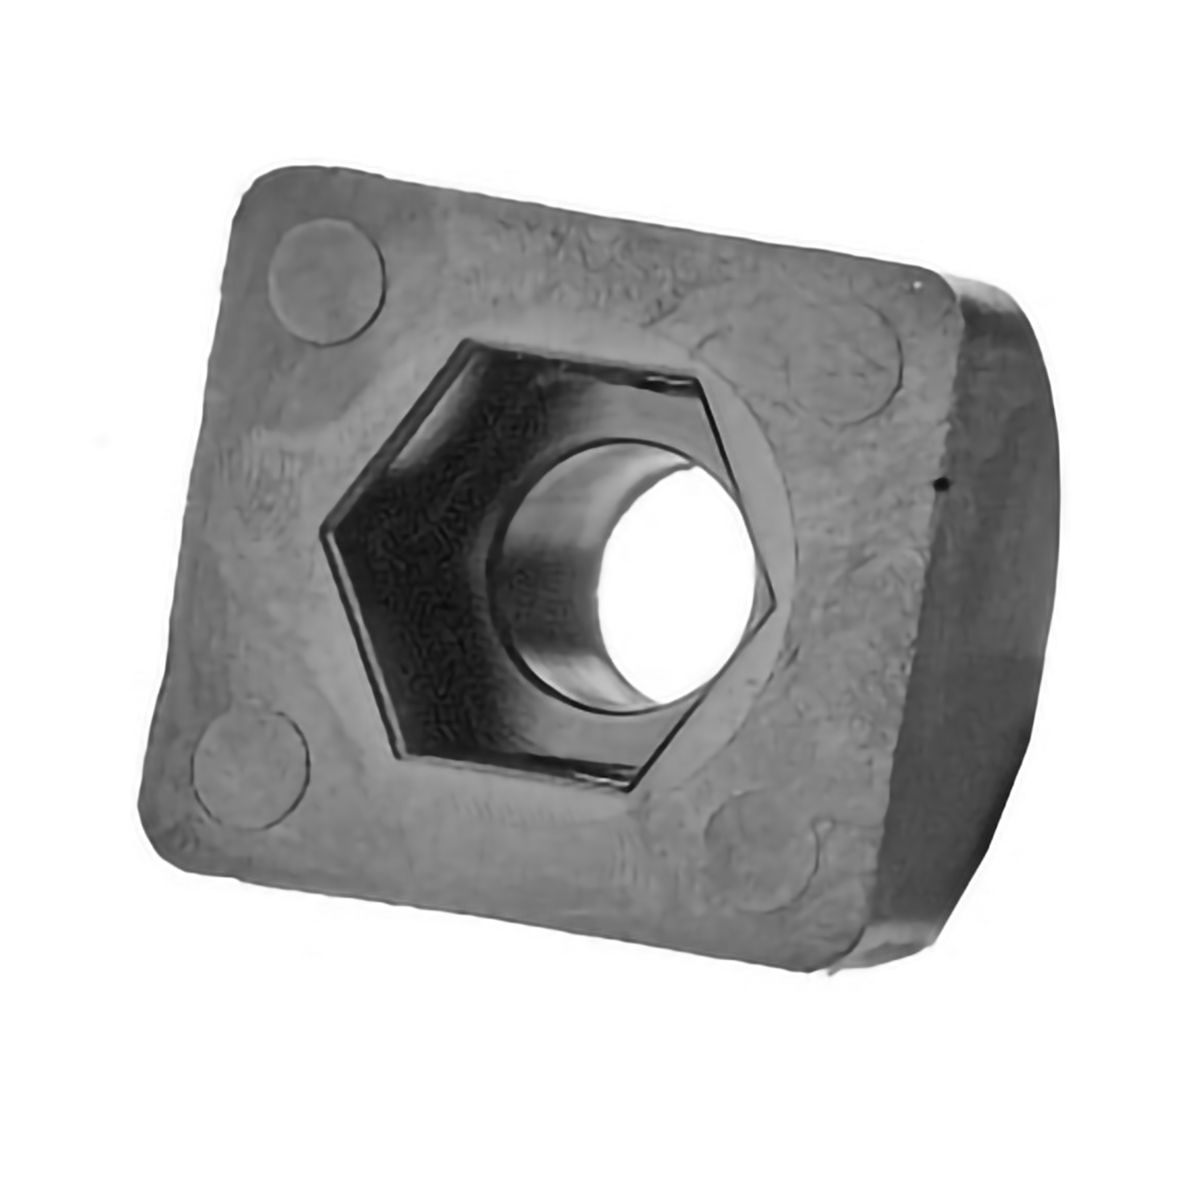 Nut retainer for  S 3000/1300 workstands